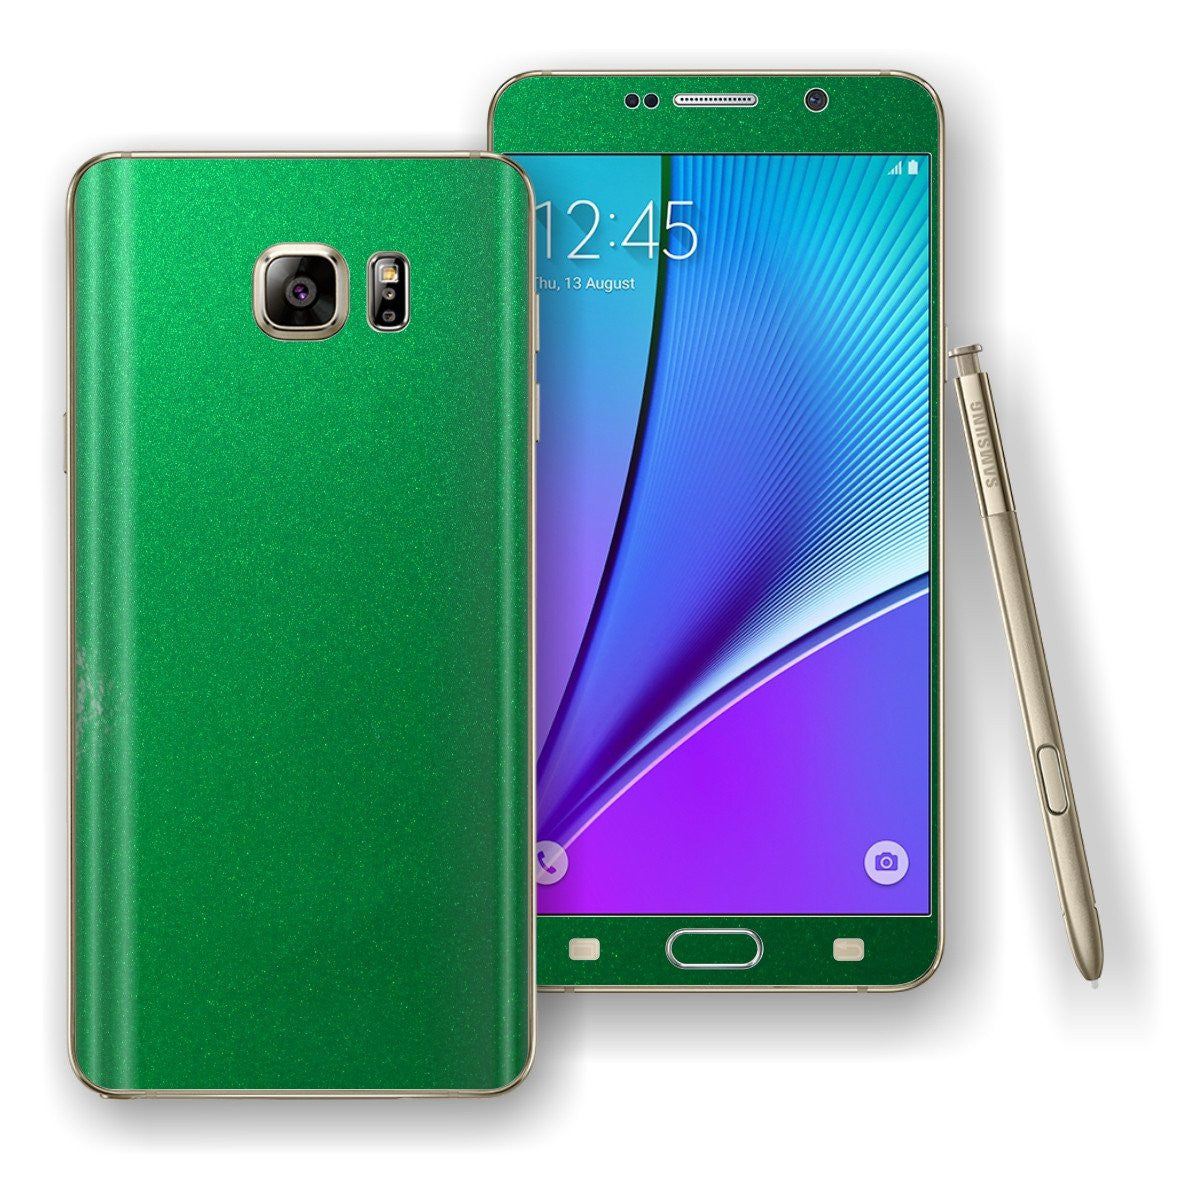 Samsung Galaxy NOTE 5 3M Viper Green Glossy Skin Wrap Decal Cover Protector by EasySkinz